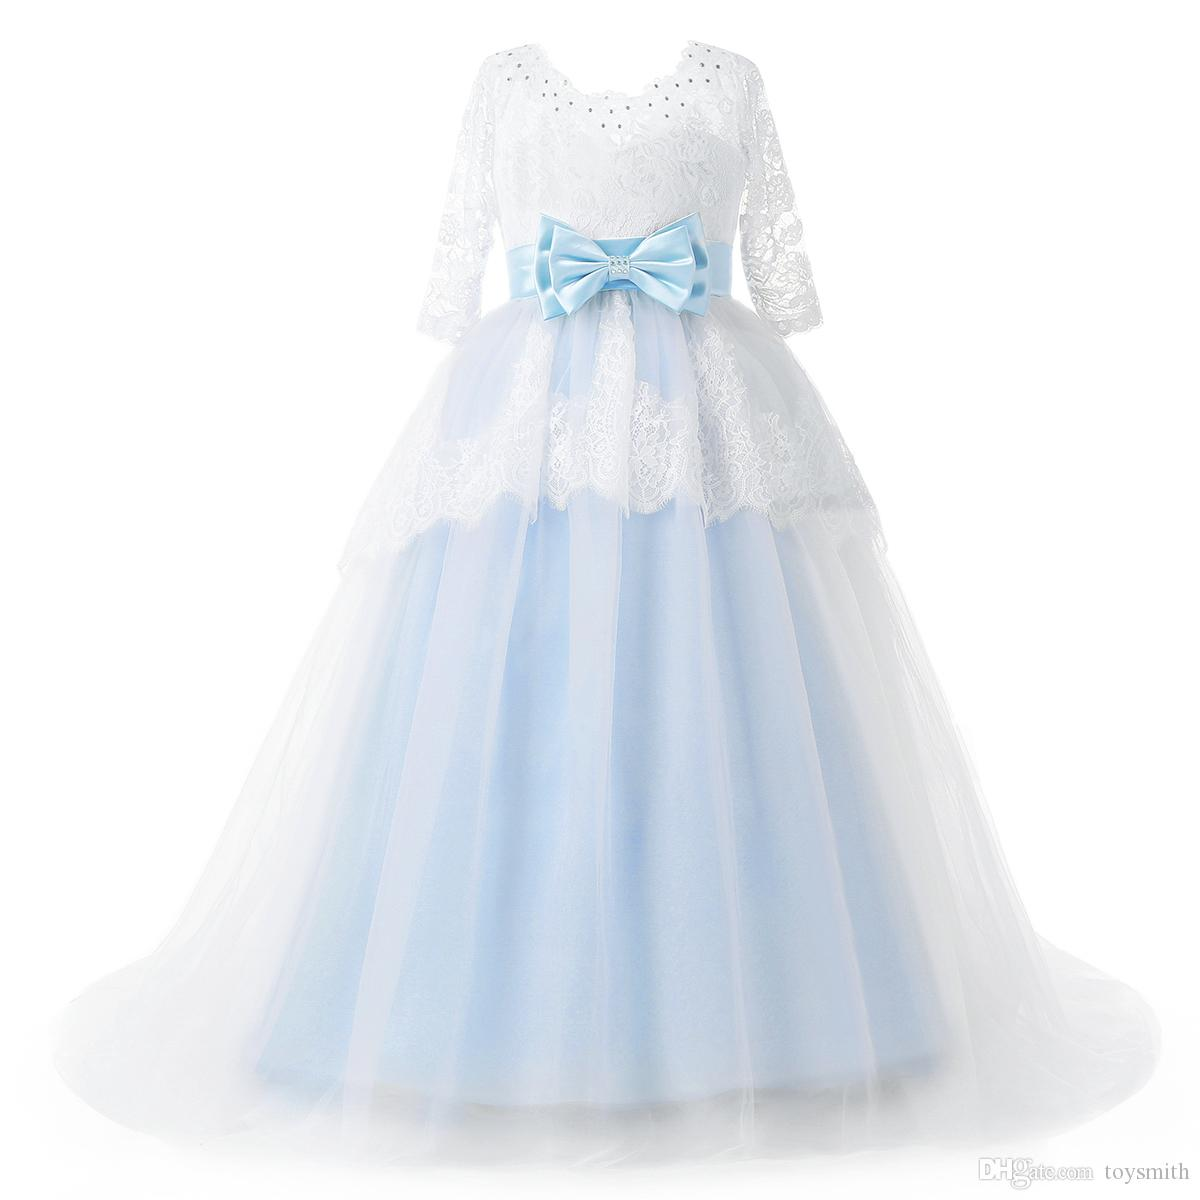 2018 New Fashion Tulle Jewel Lace Applique Half Sleeve Beaded Bow Flower Girl Dresses Sash Children's Pageant Dress Free Shipping